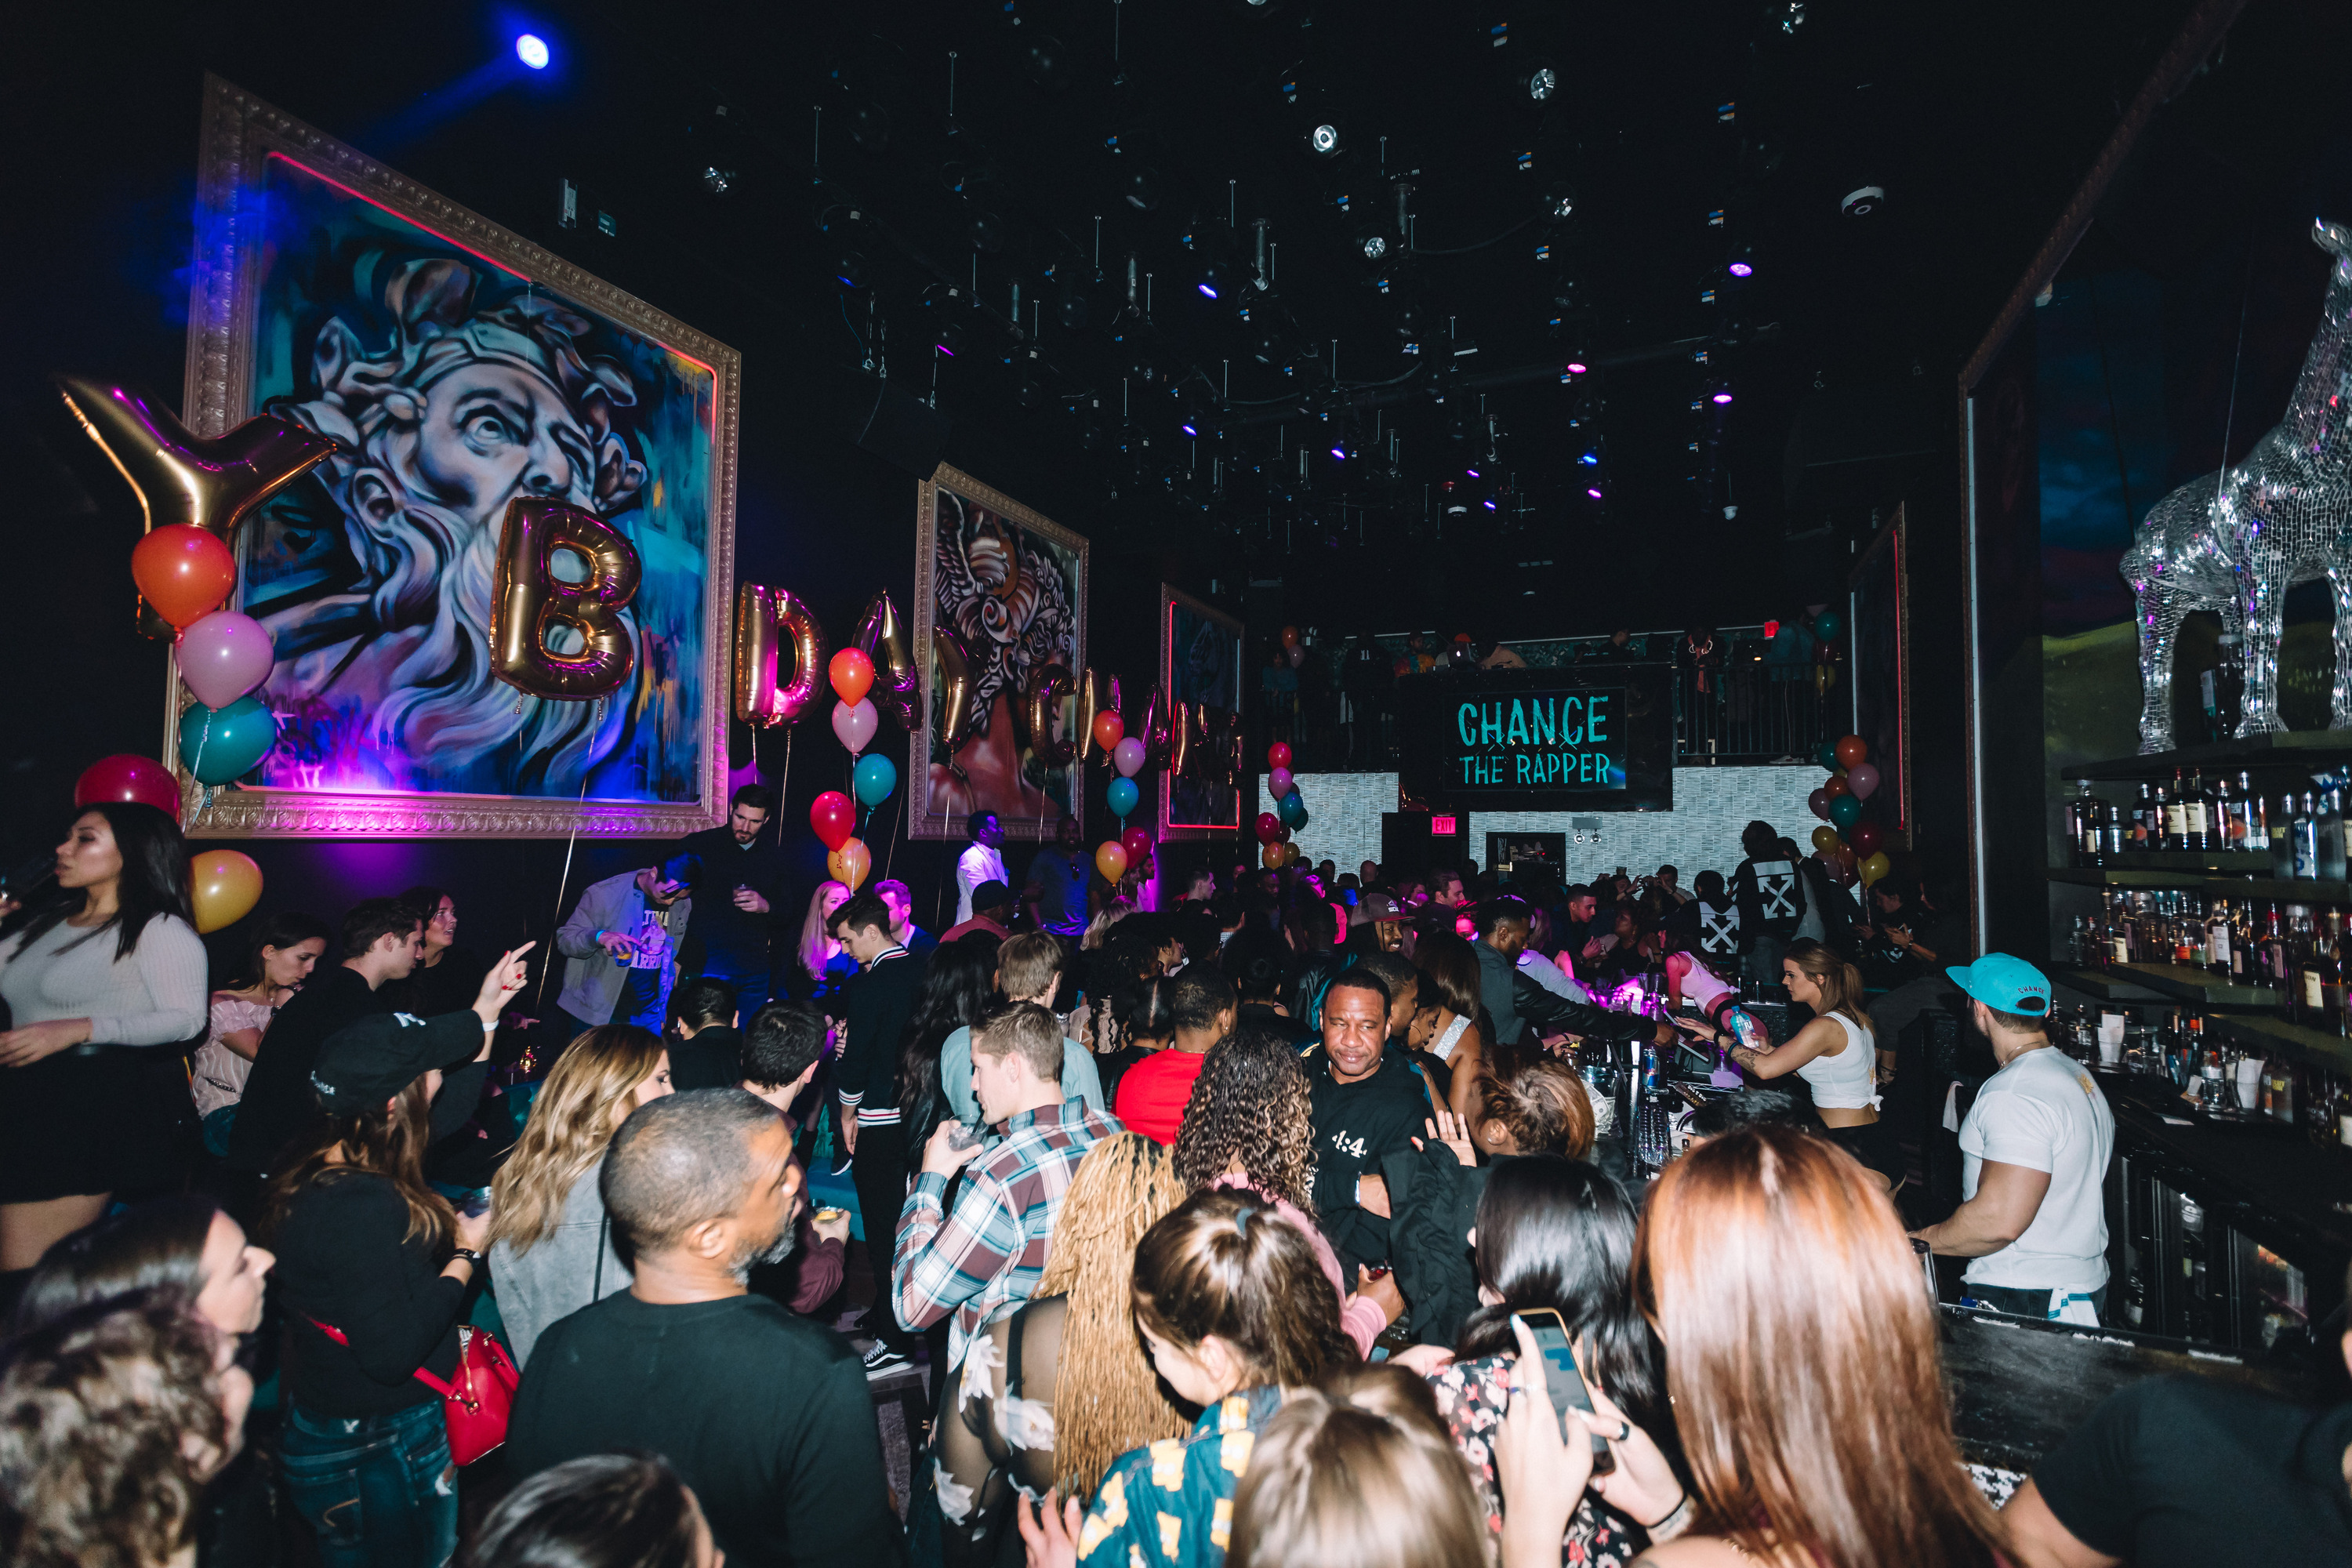 14 Best Nightclubs and Dance Clubs in Chicago